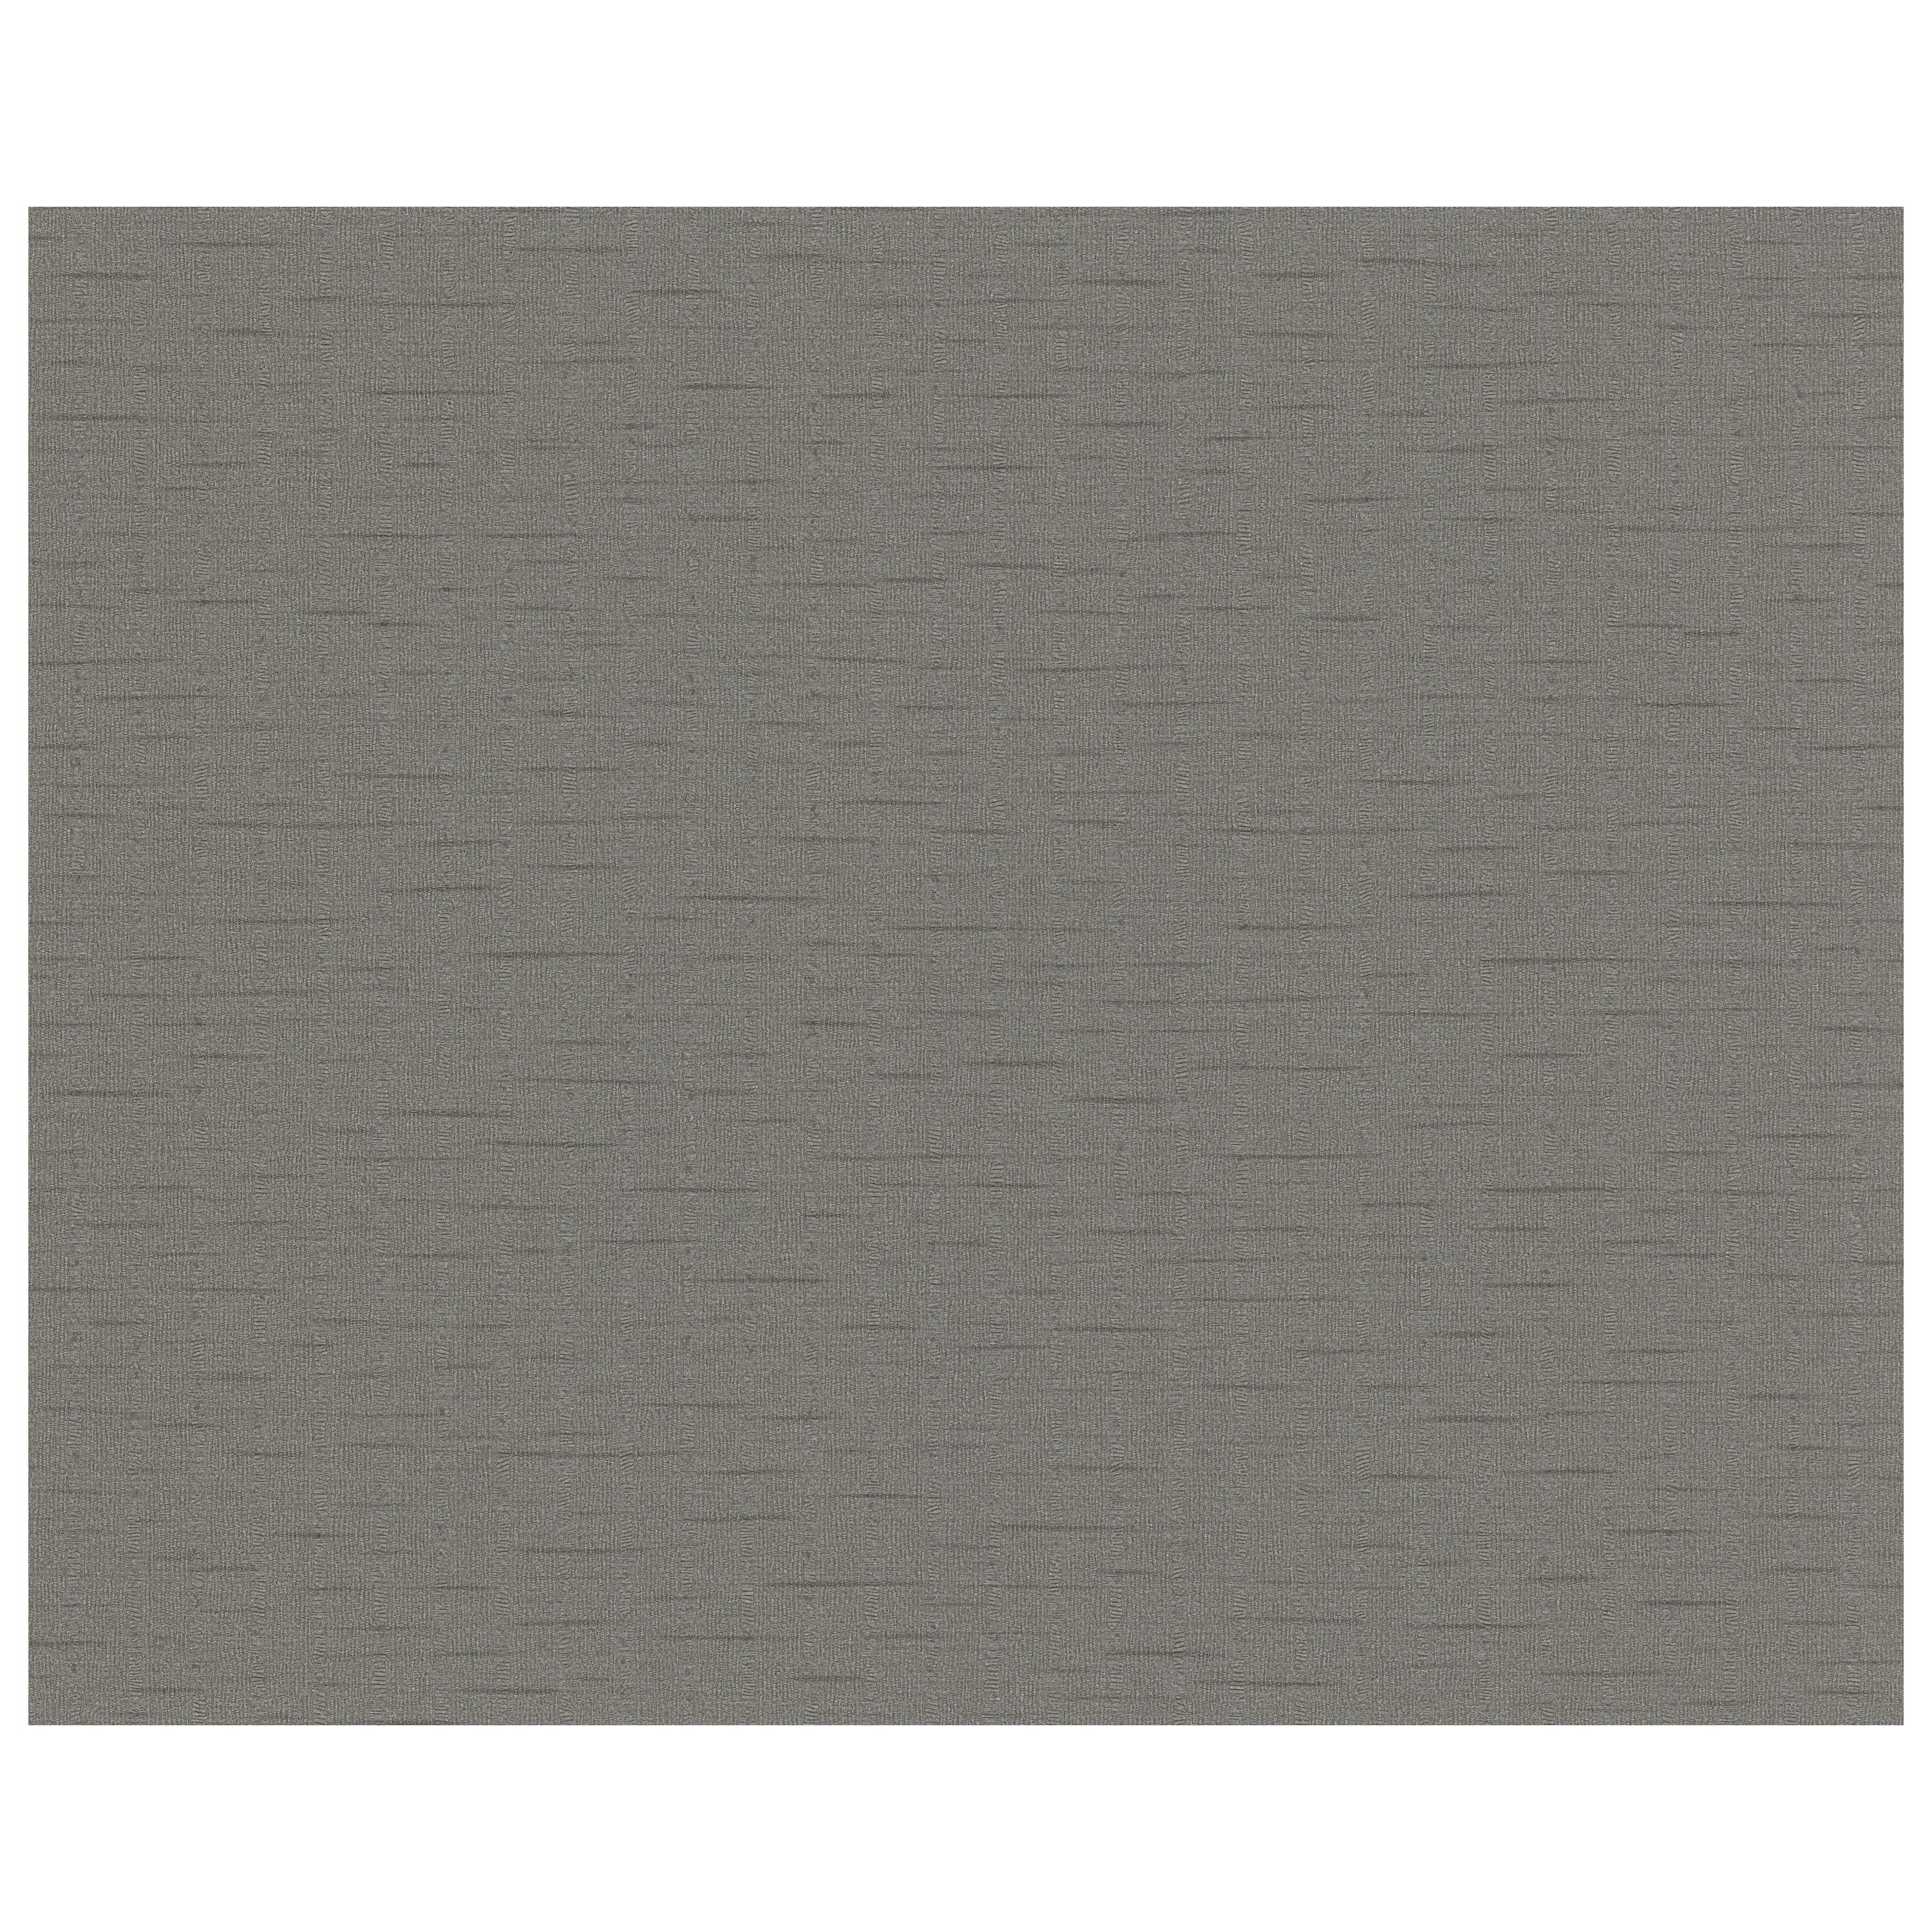 Image of Color Library II Horizontal Ticking Wallpaper